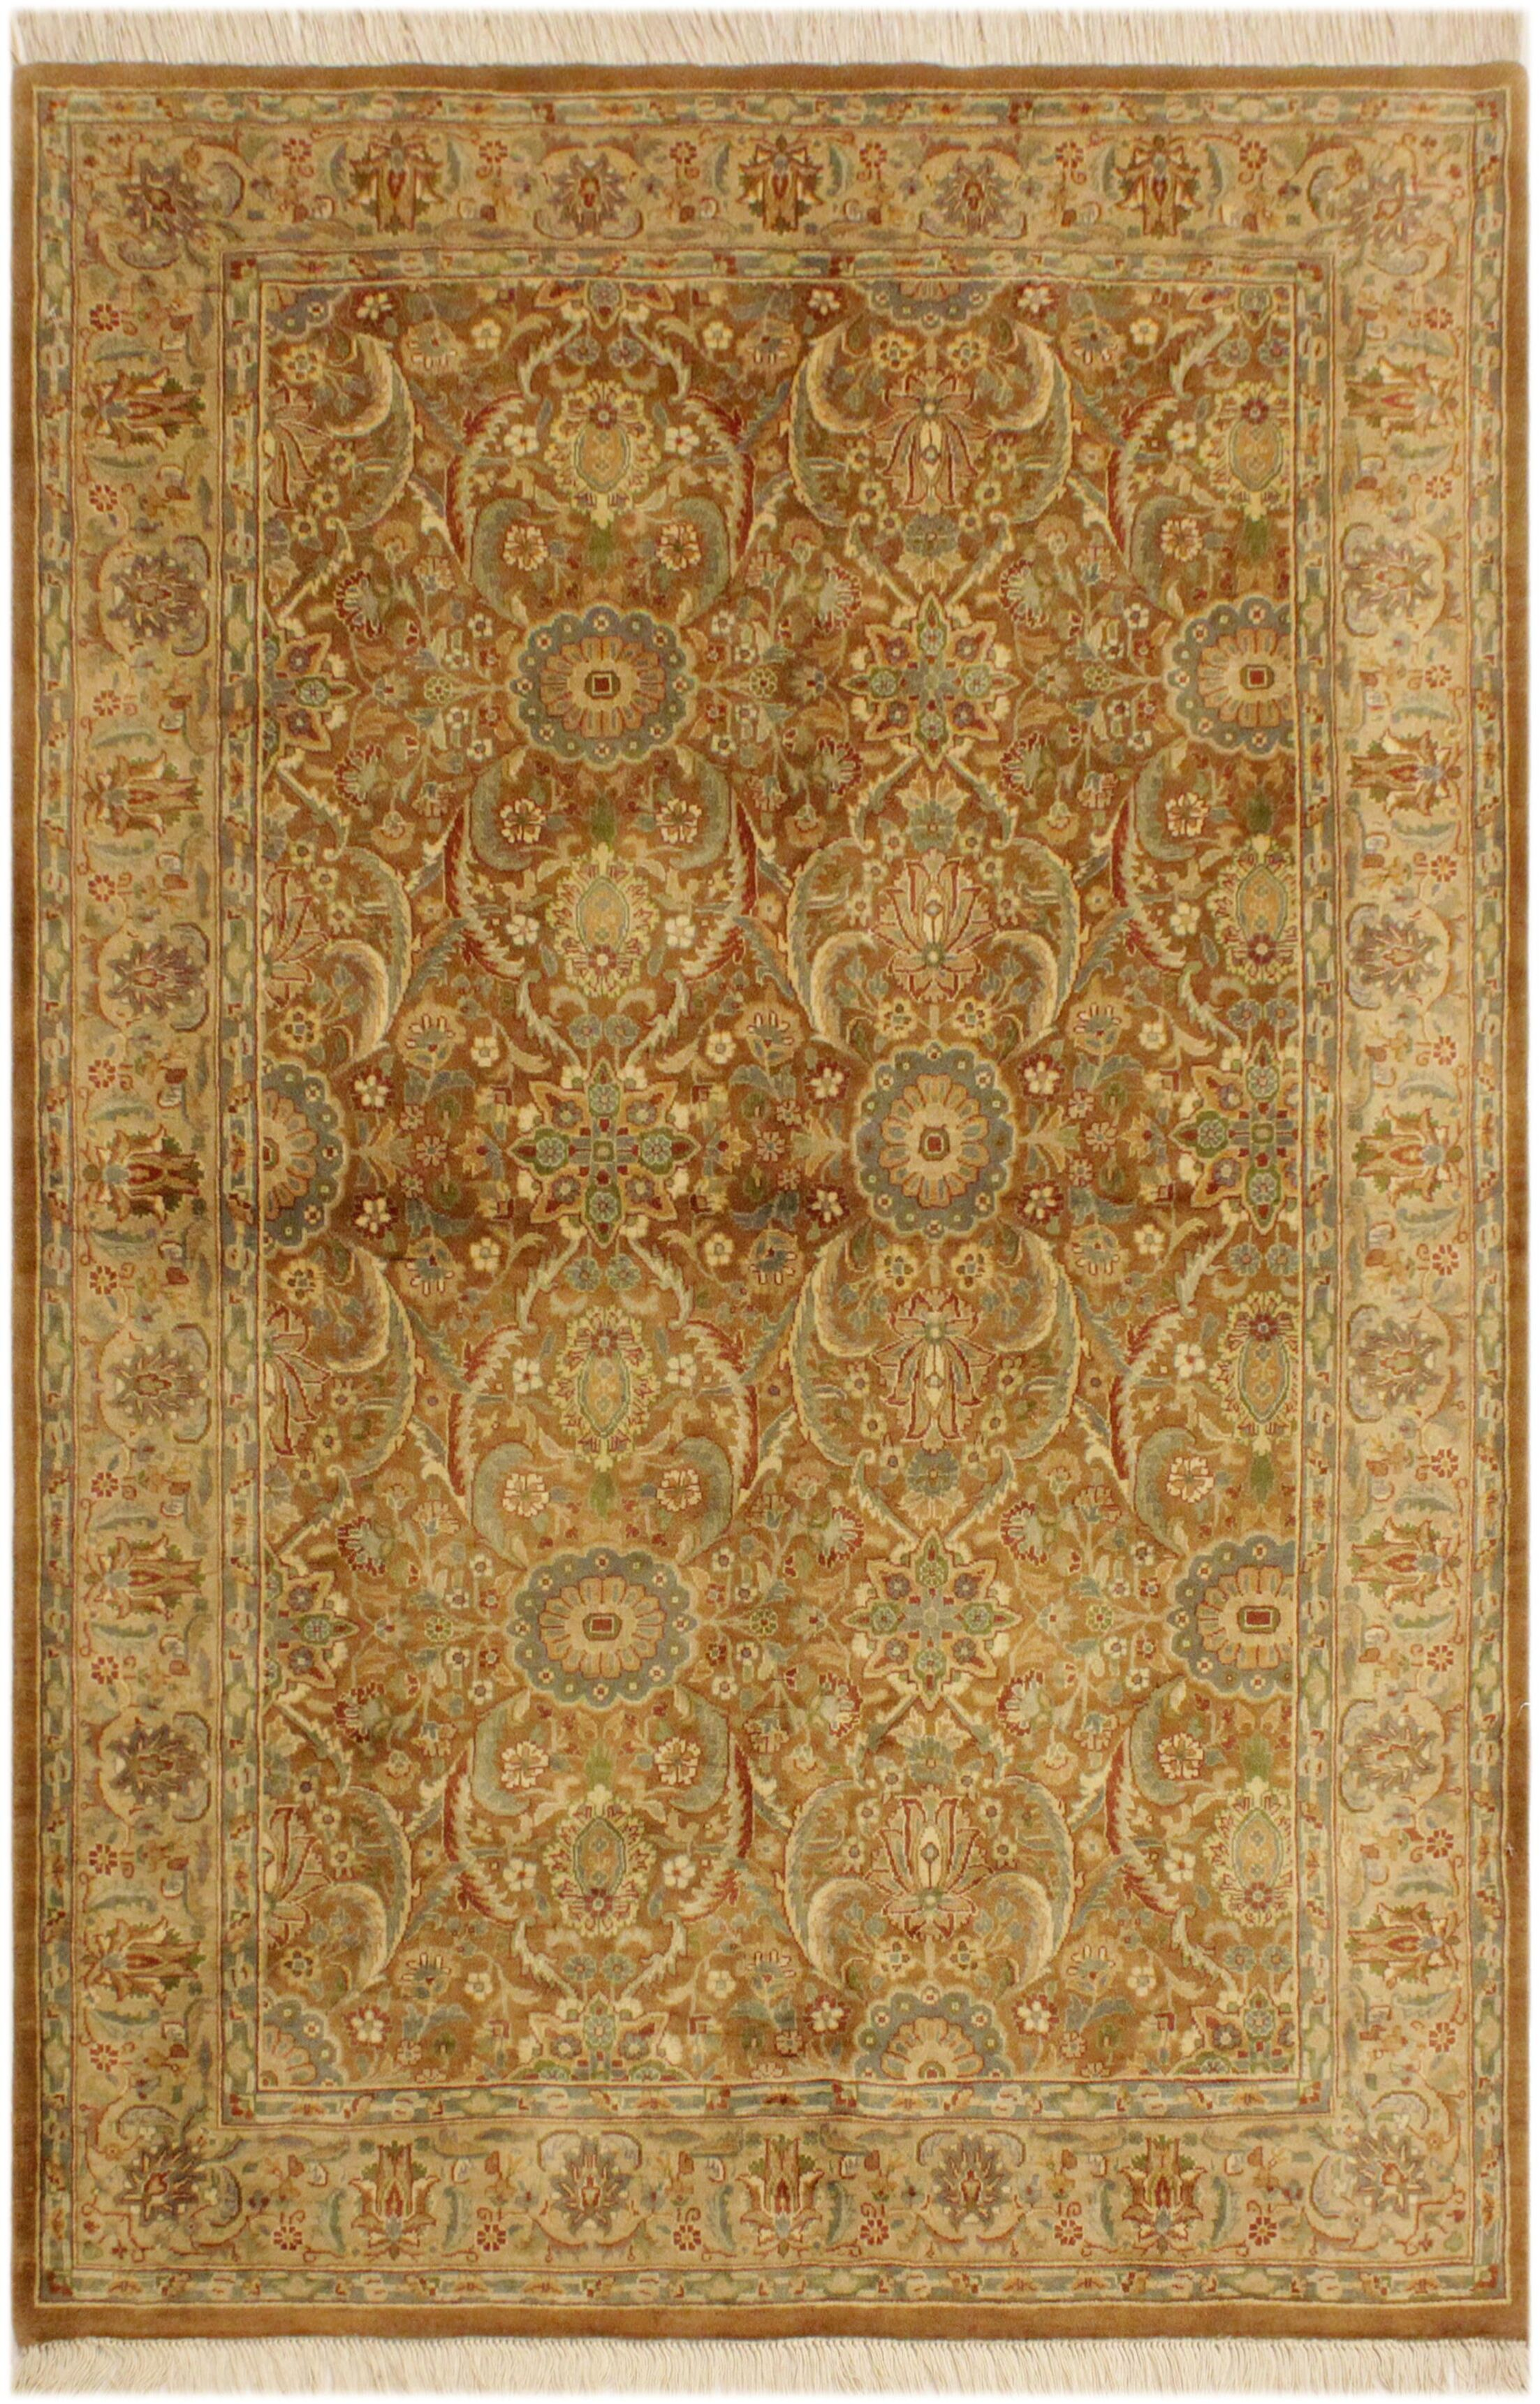 One-of-a-Kind Mcdavid Hand-Knotted Wool Light Brown/Light Tan Area Rug